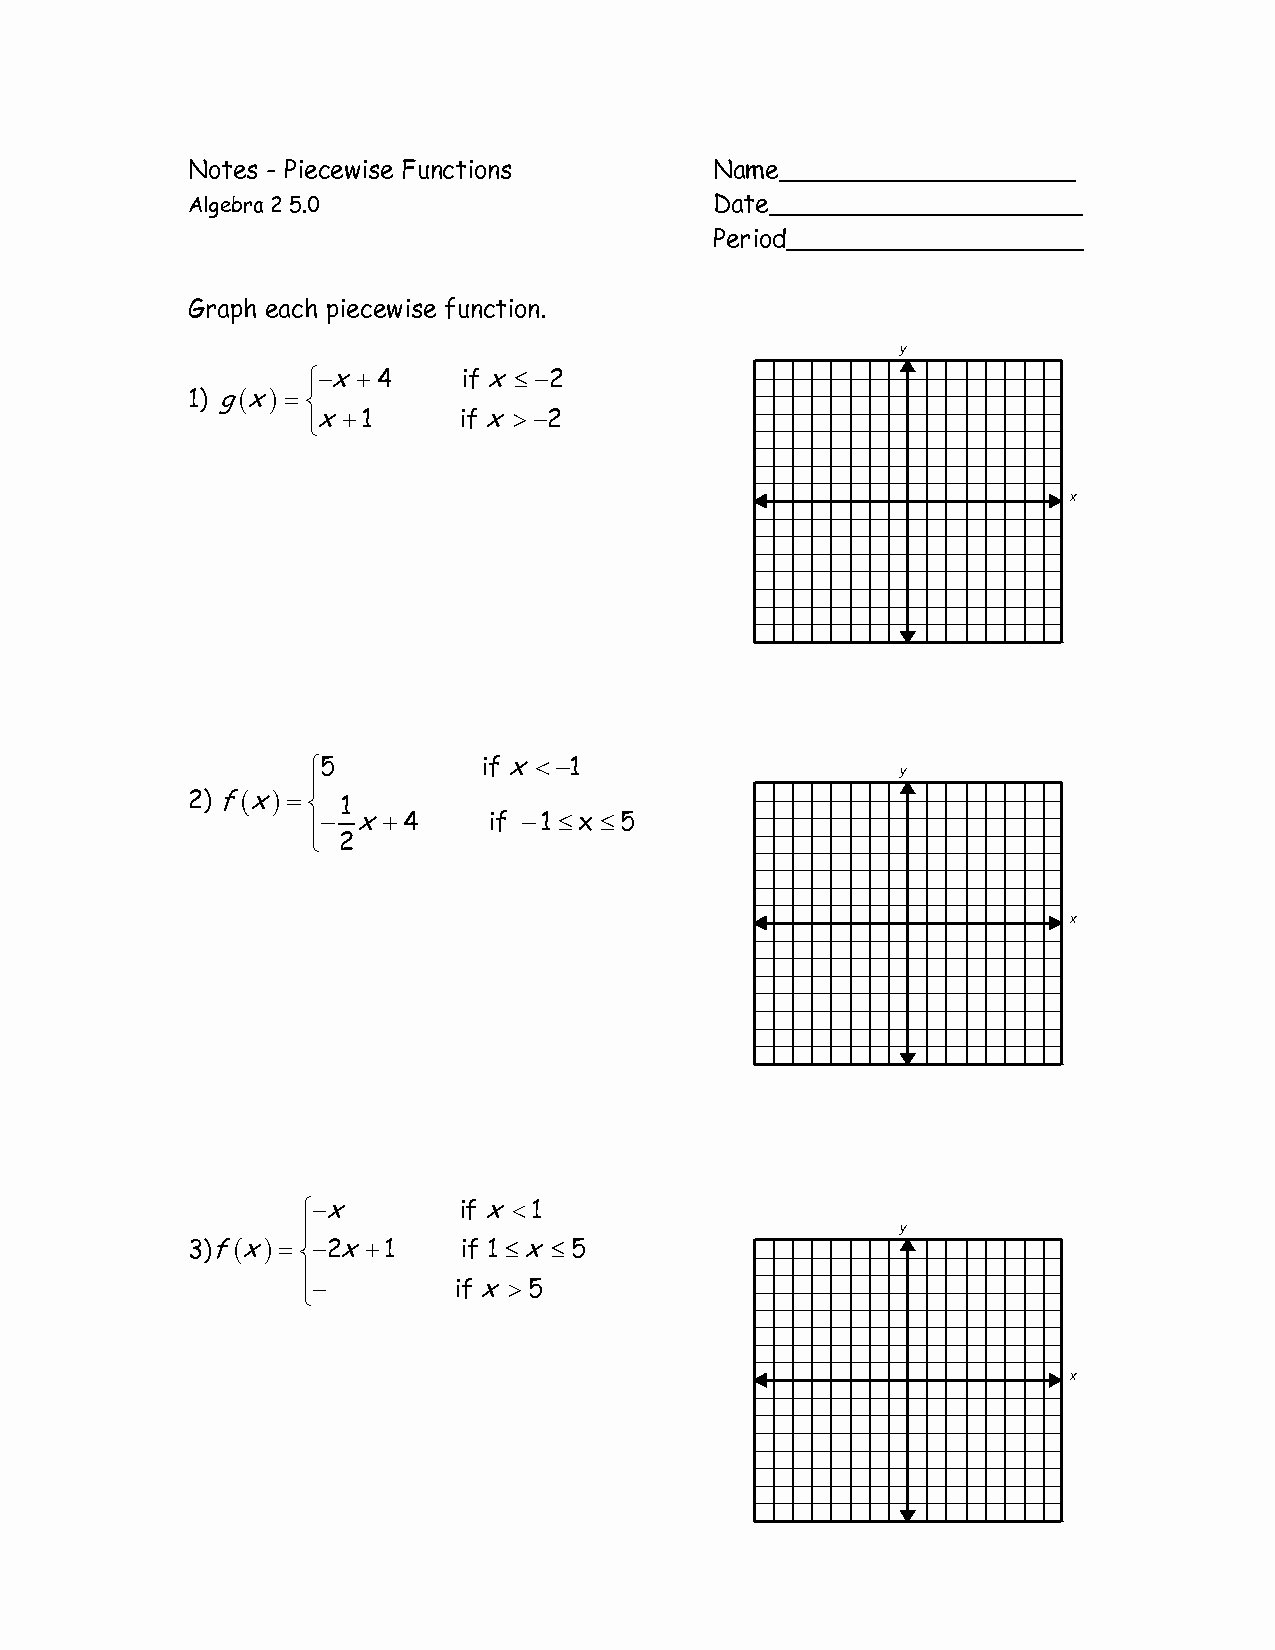 Graphing Piecewise Functions Worksheet Beautiful Graphs Of Piecewise Functions Worksheet Google Search